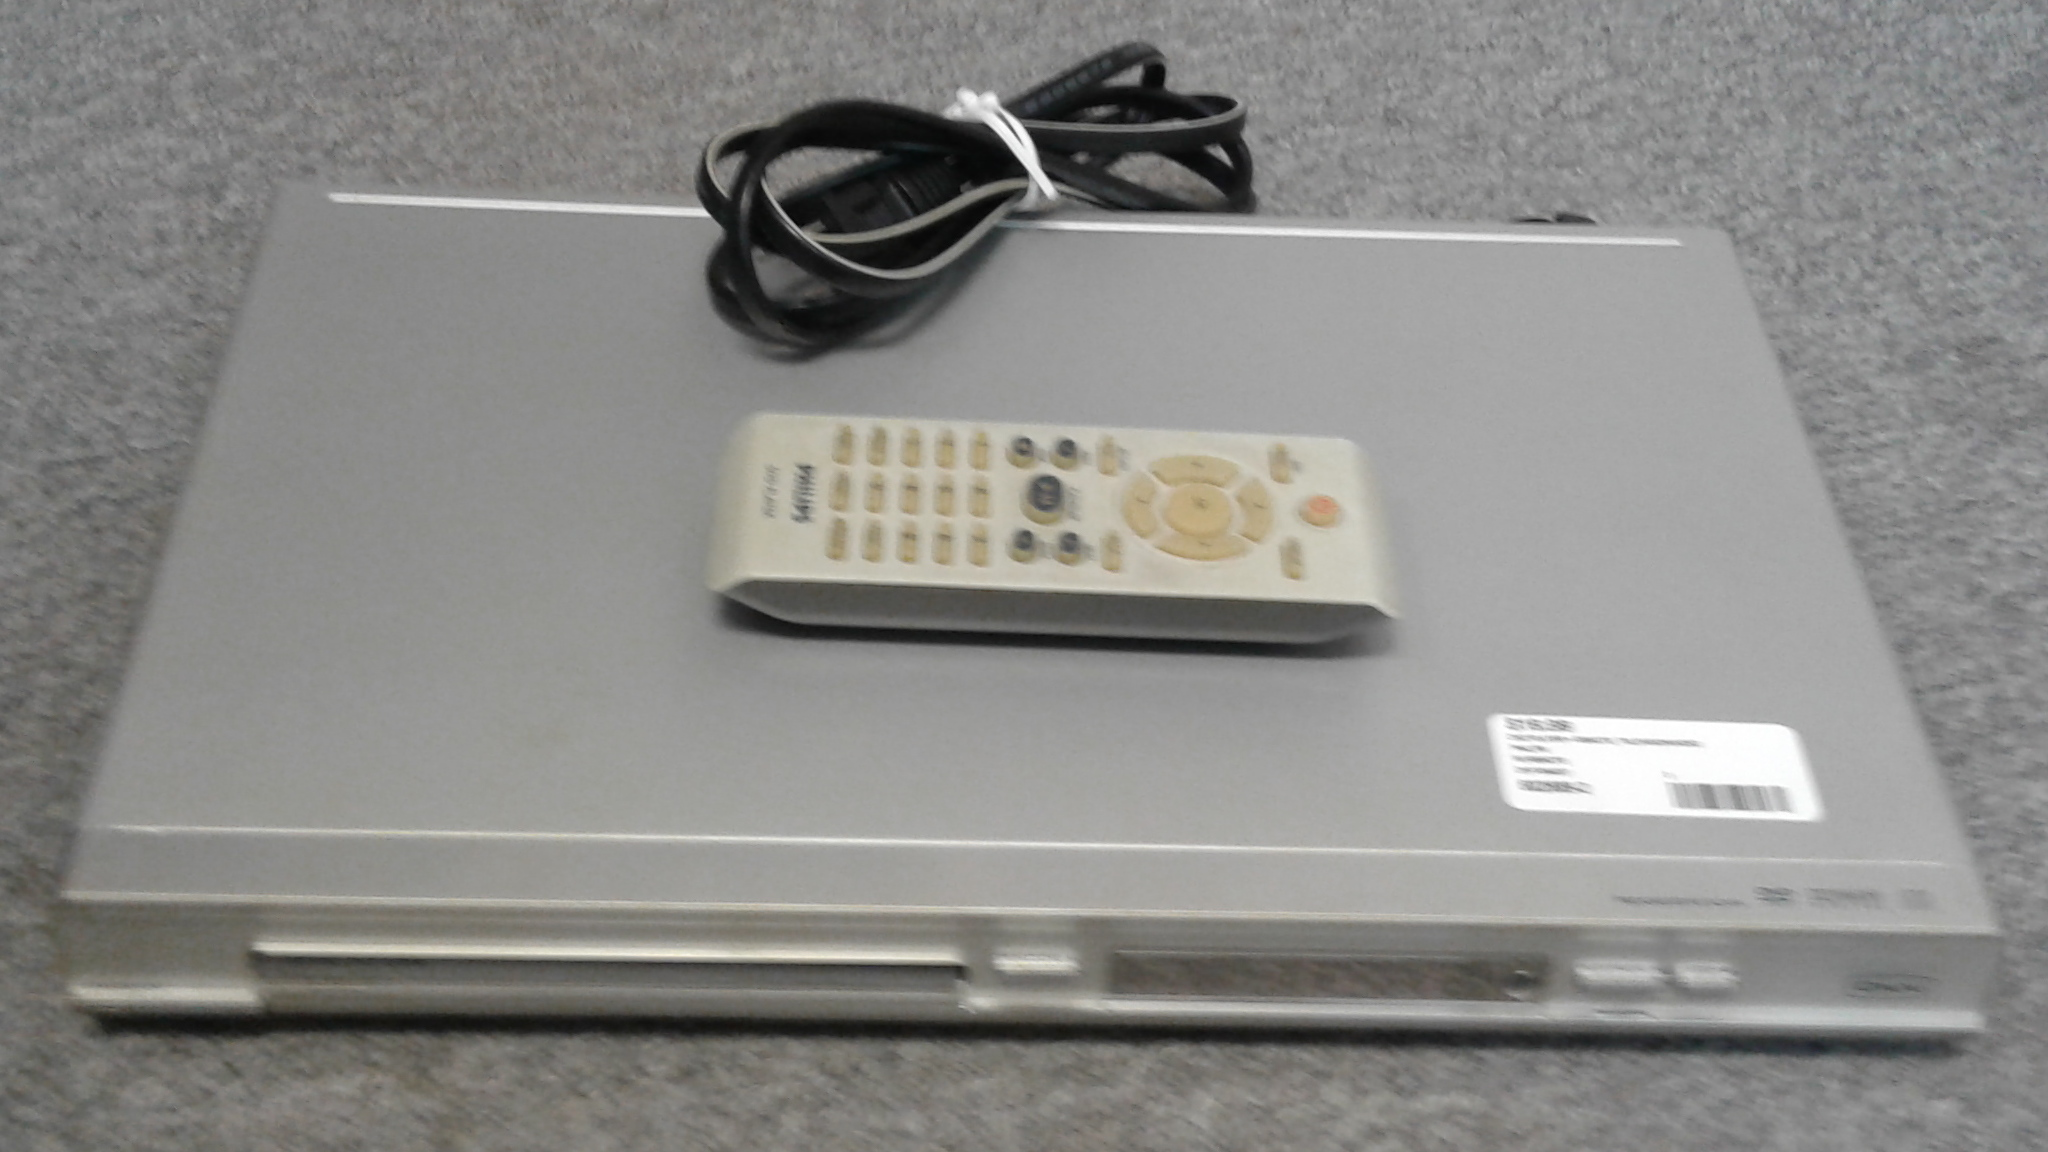 PHILIPS DVP 3040/37 DVD PLAYER + REMOTE